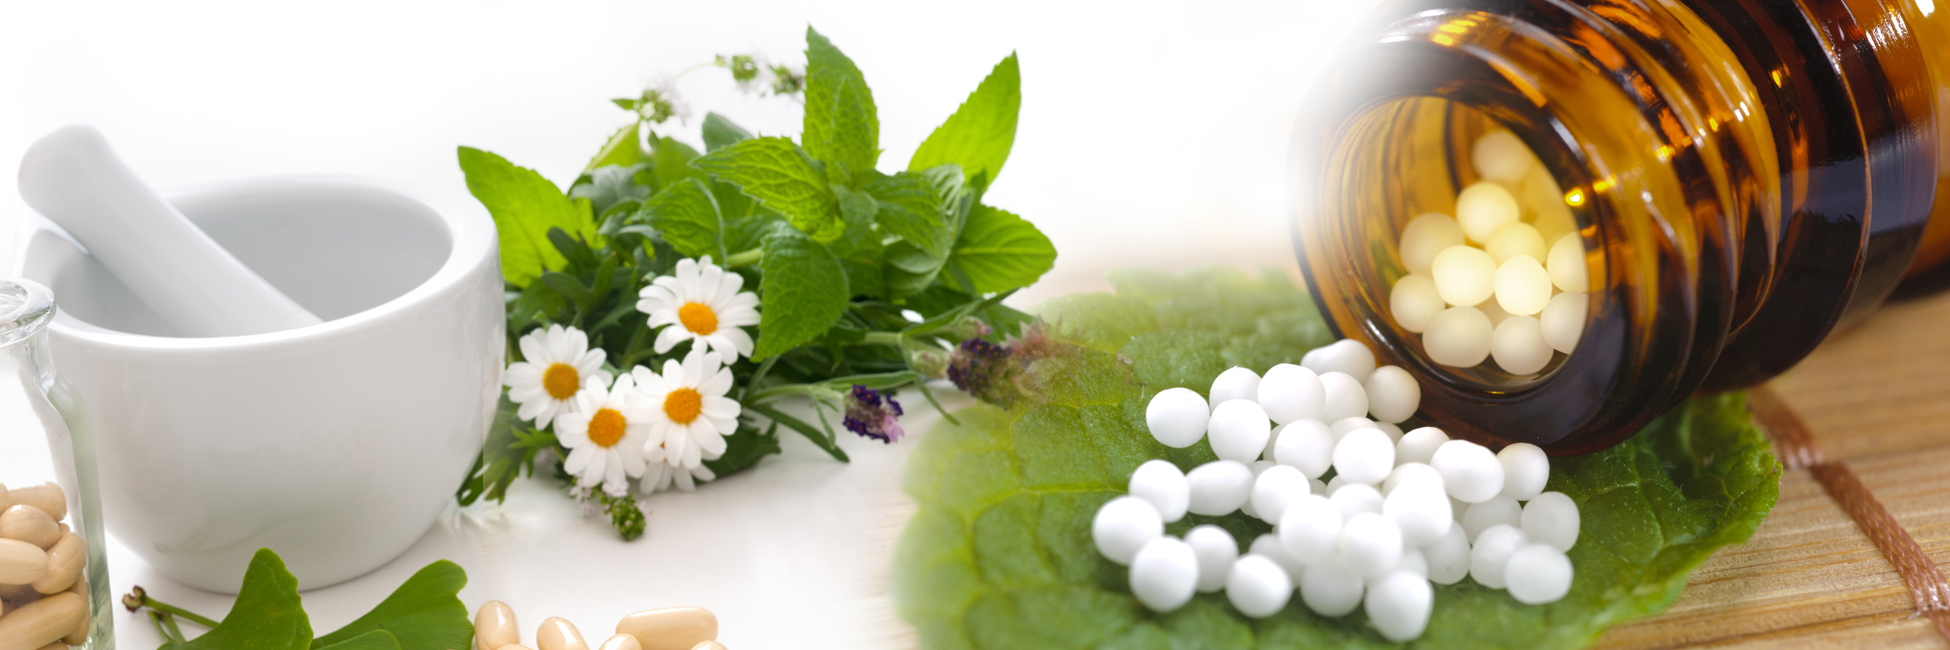 Homeopathy Clinic in Nigdi | Homeopathy Doctor :: Dr. Manish Jawale